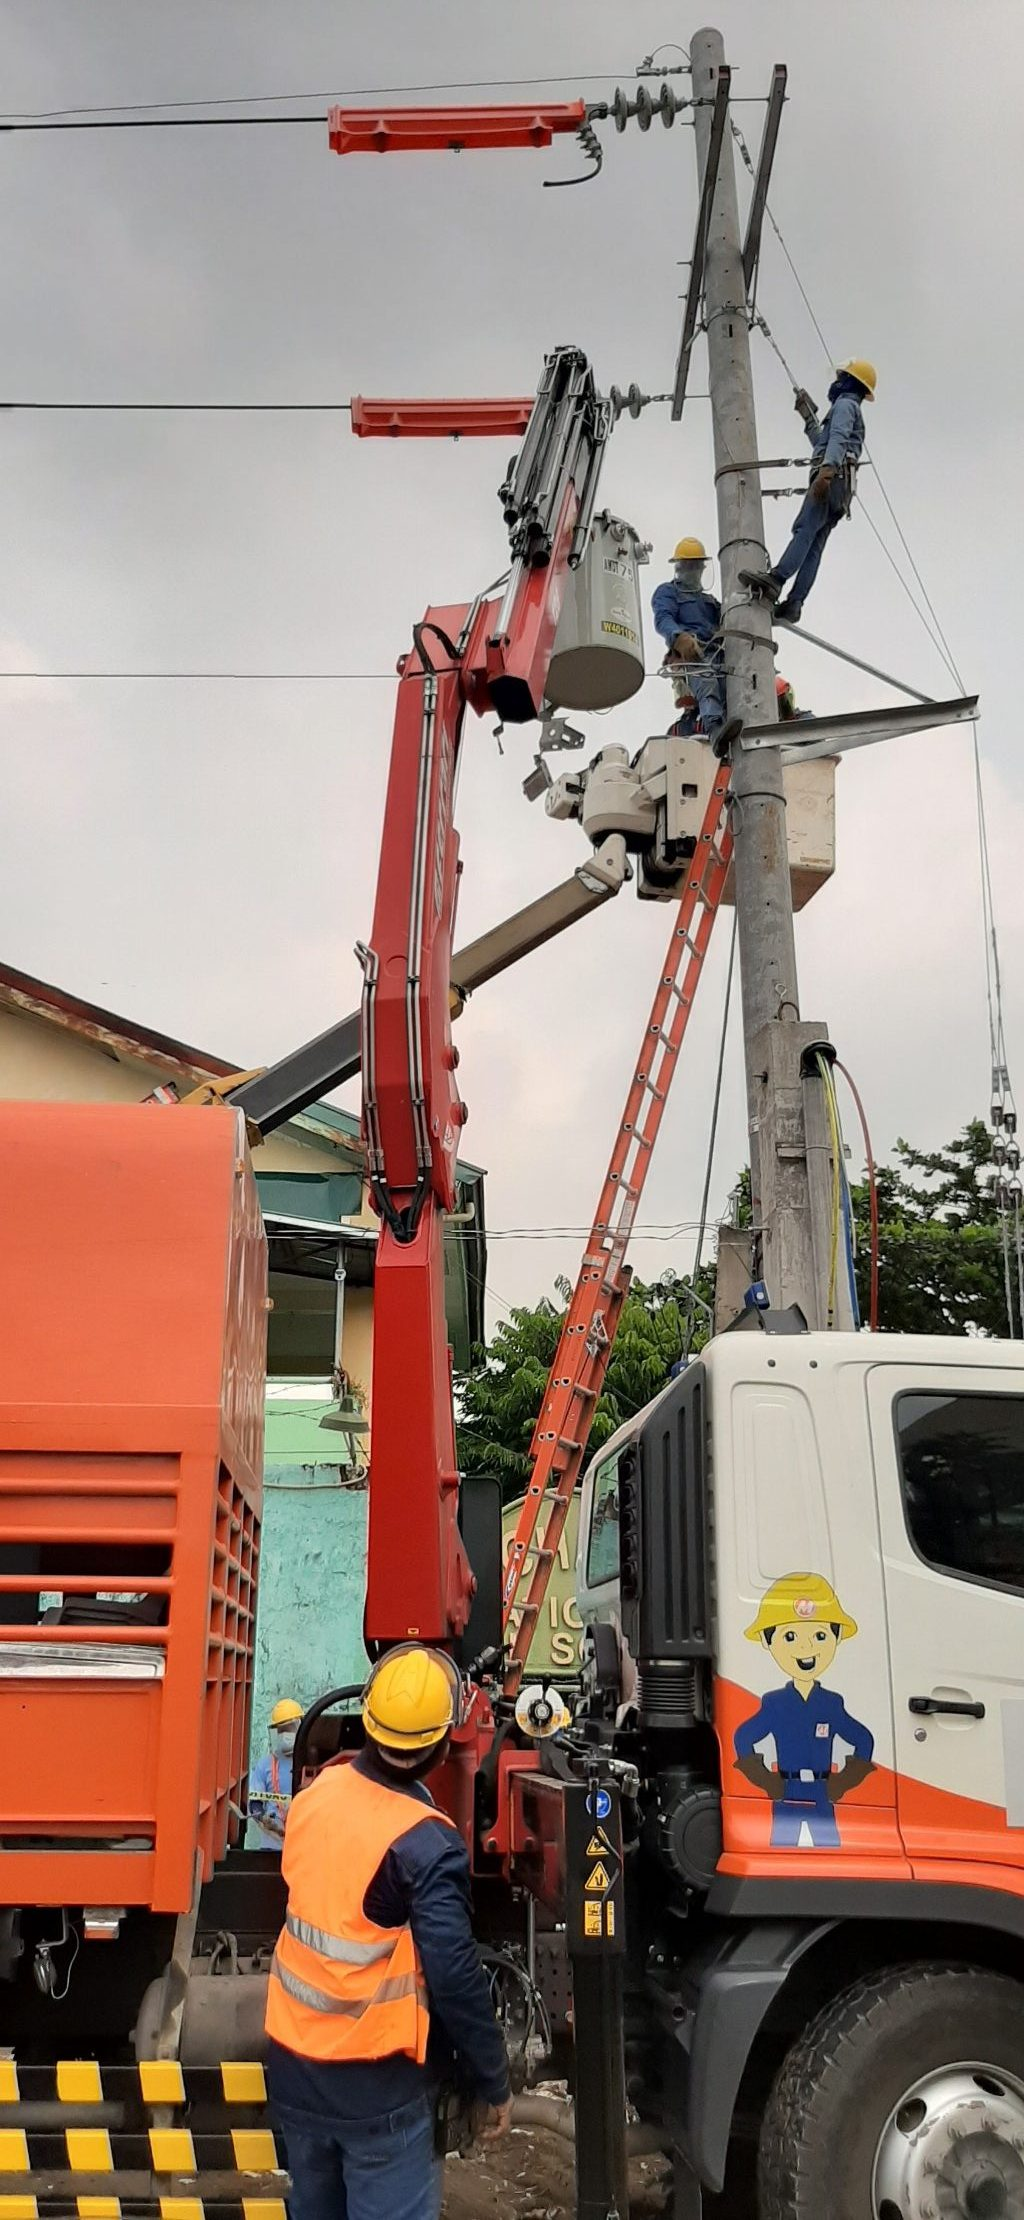 Calamba 3 rotated e1601963538774 - Meralco powers up province of Laguna's reinforced COVID-19 response